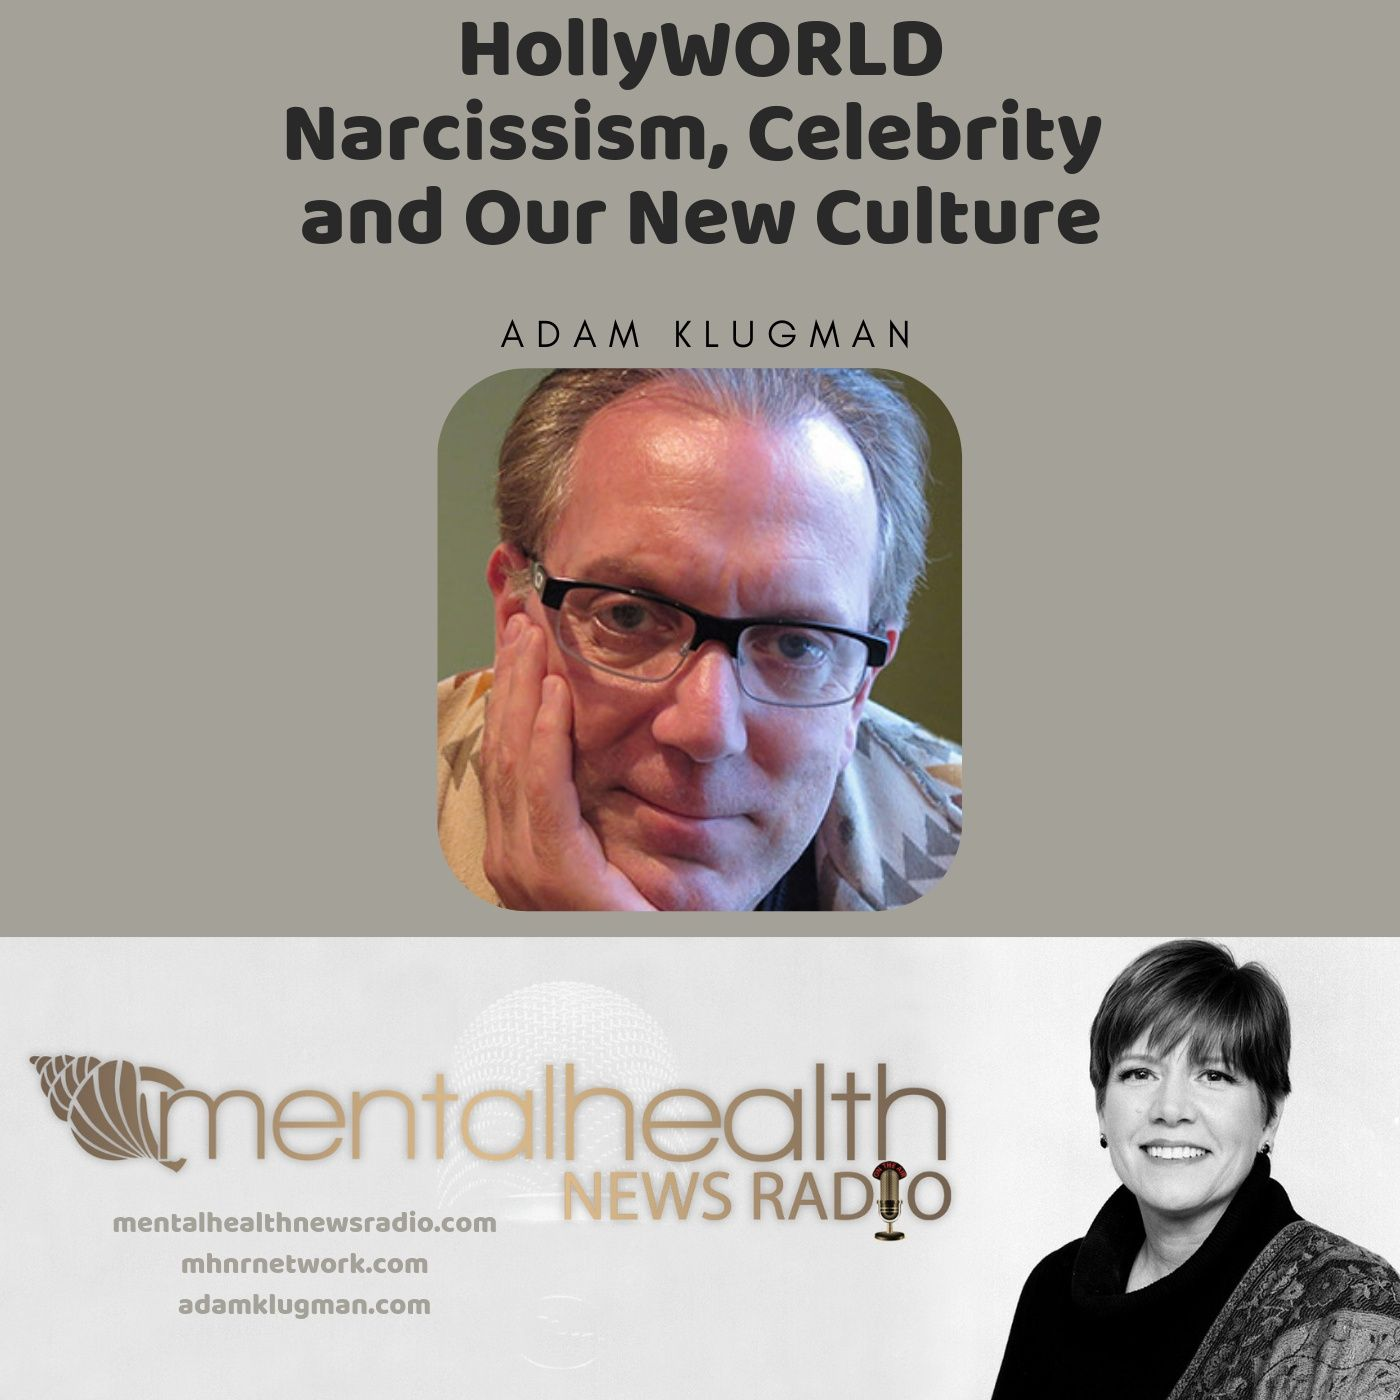 Mental Health News Radio - HollyWORLD: Narcissism, Celebrity and Our New Culture with Adam Klugman